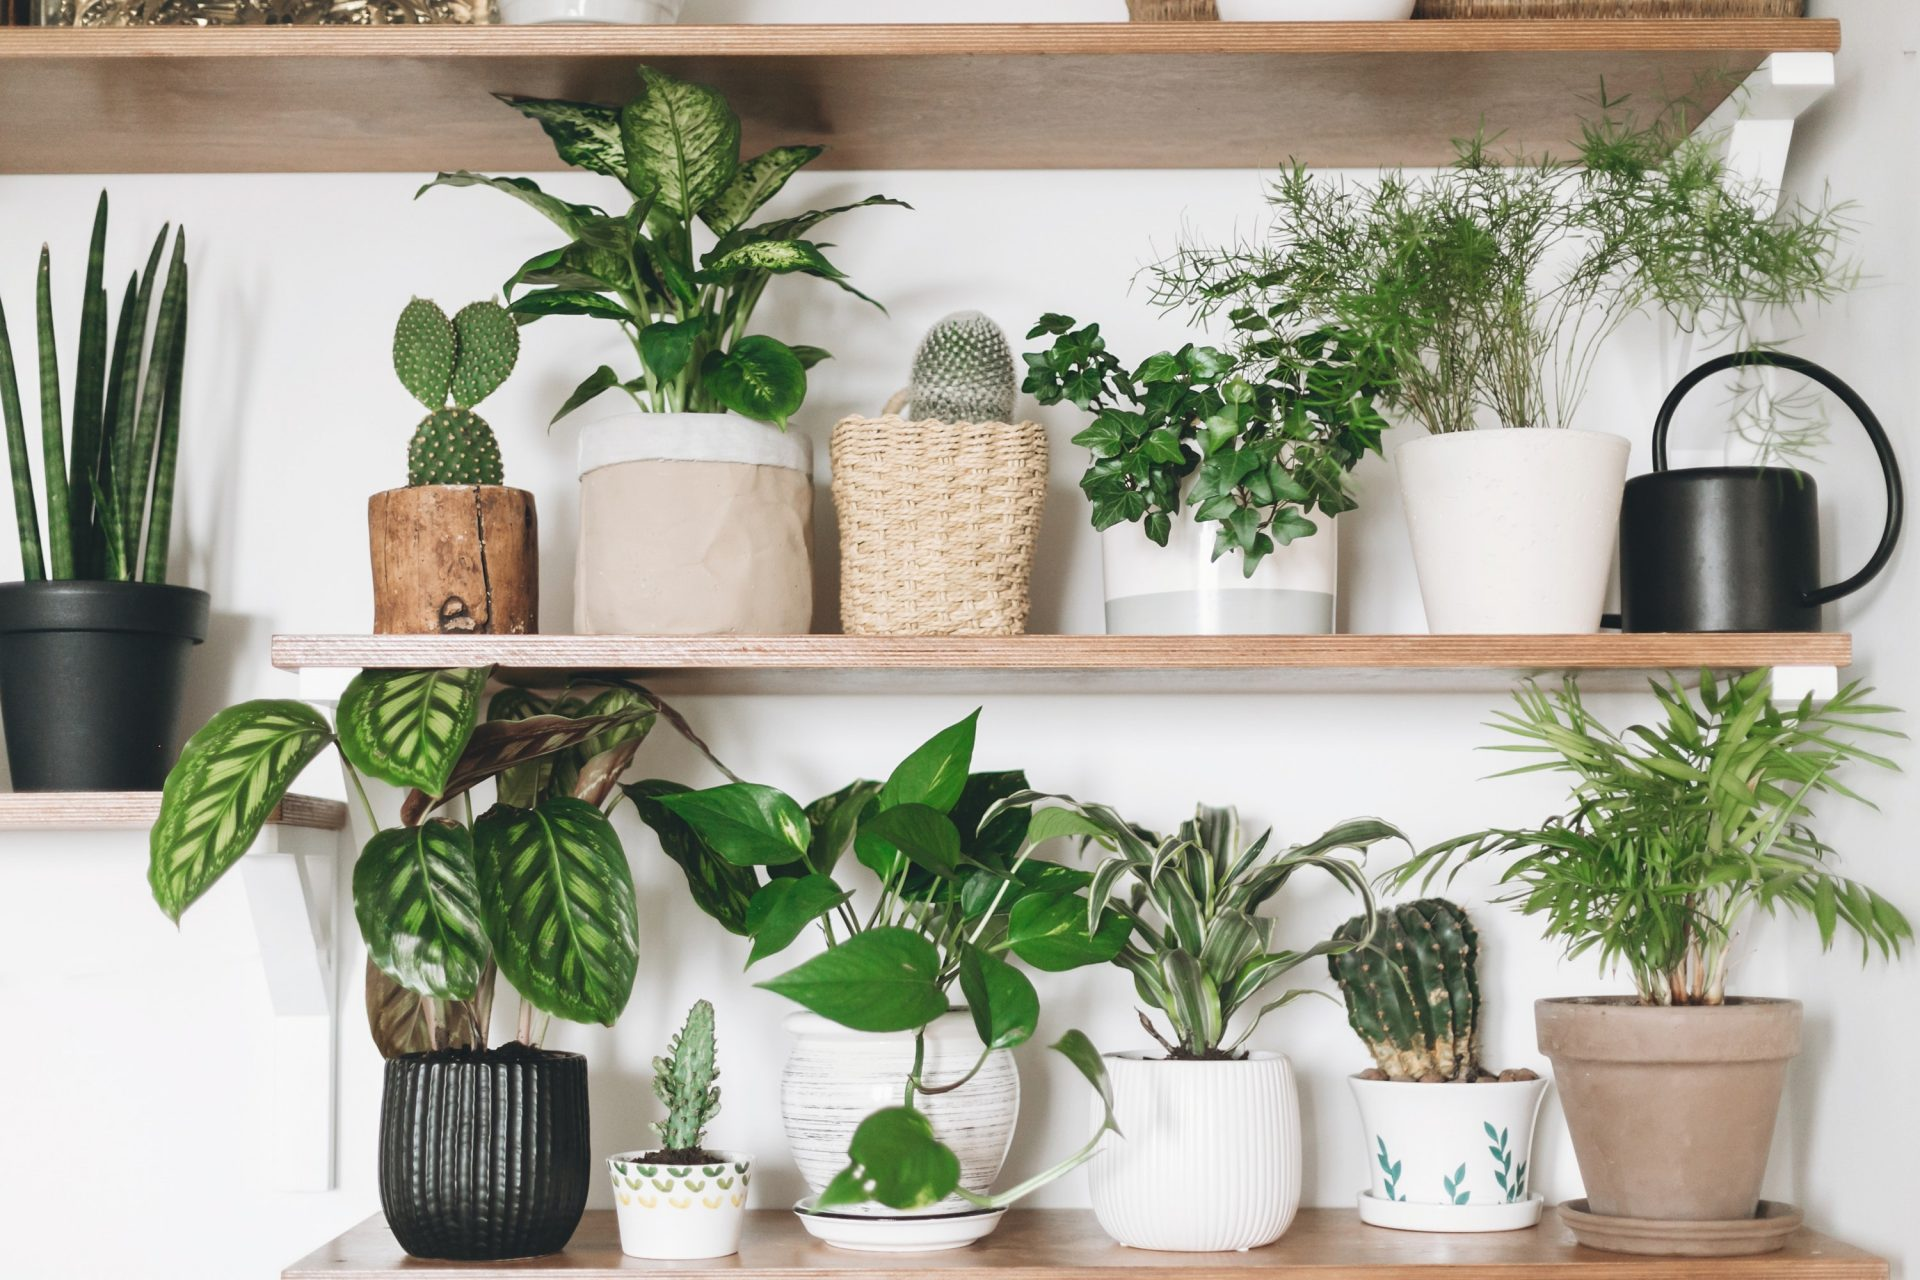 Quiz: Can you name the houseplant?